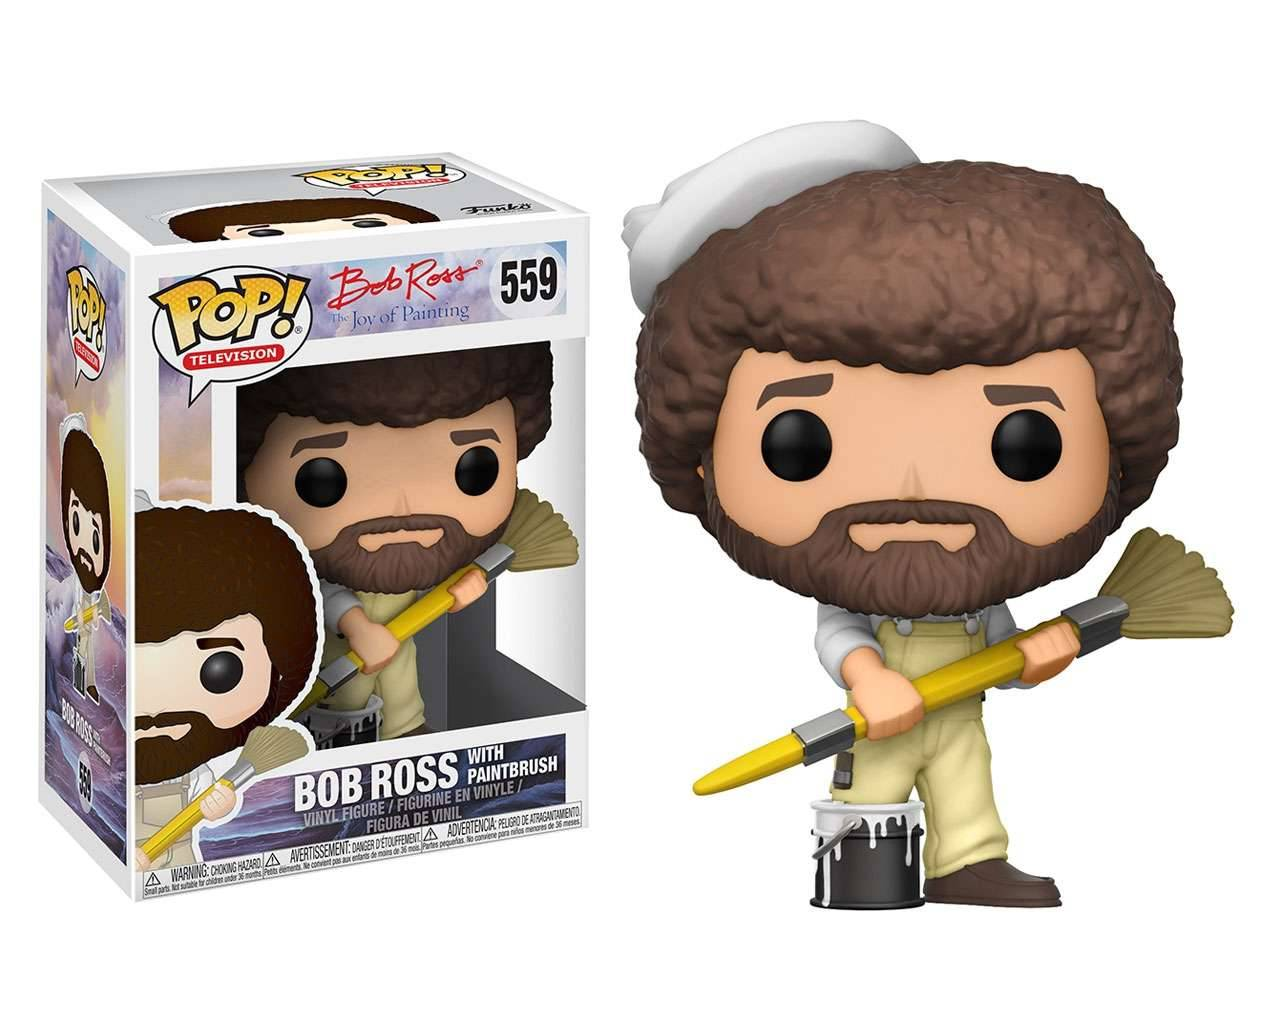 Bob Ross with Paintbrush Pop! Vinyl